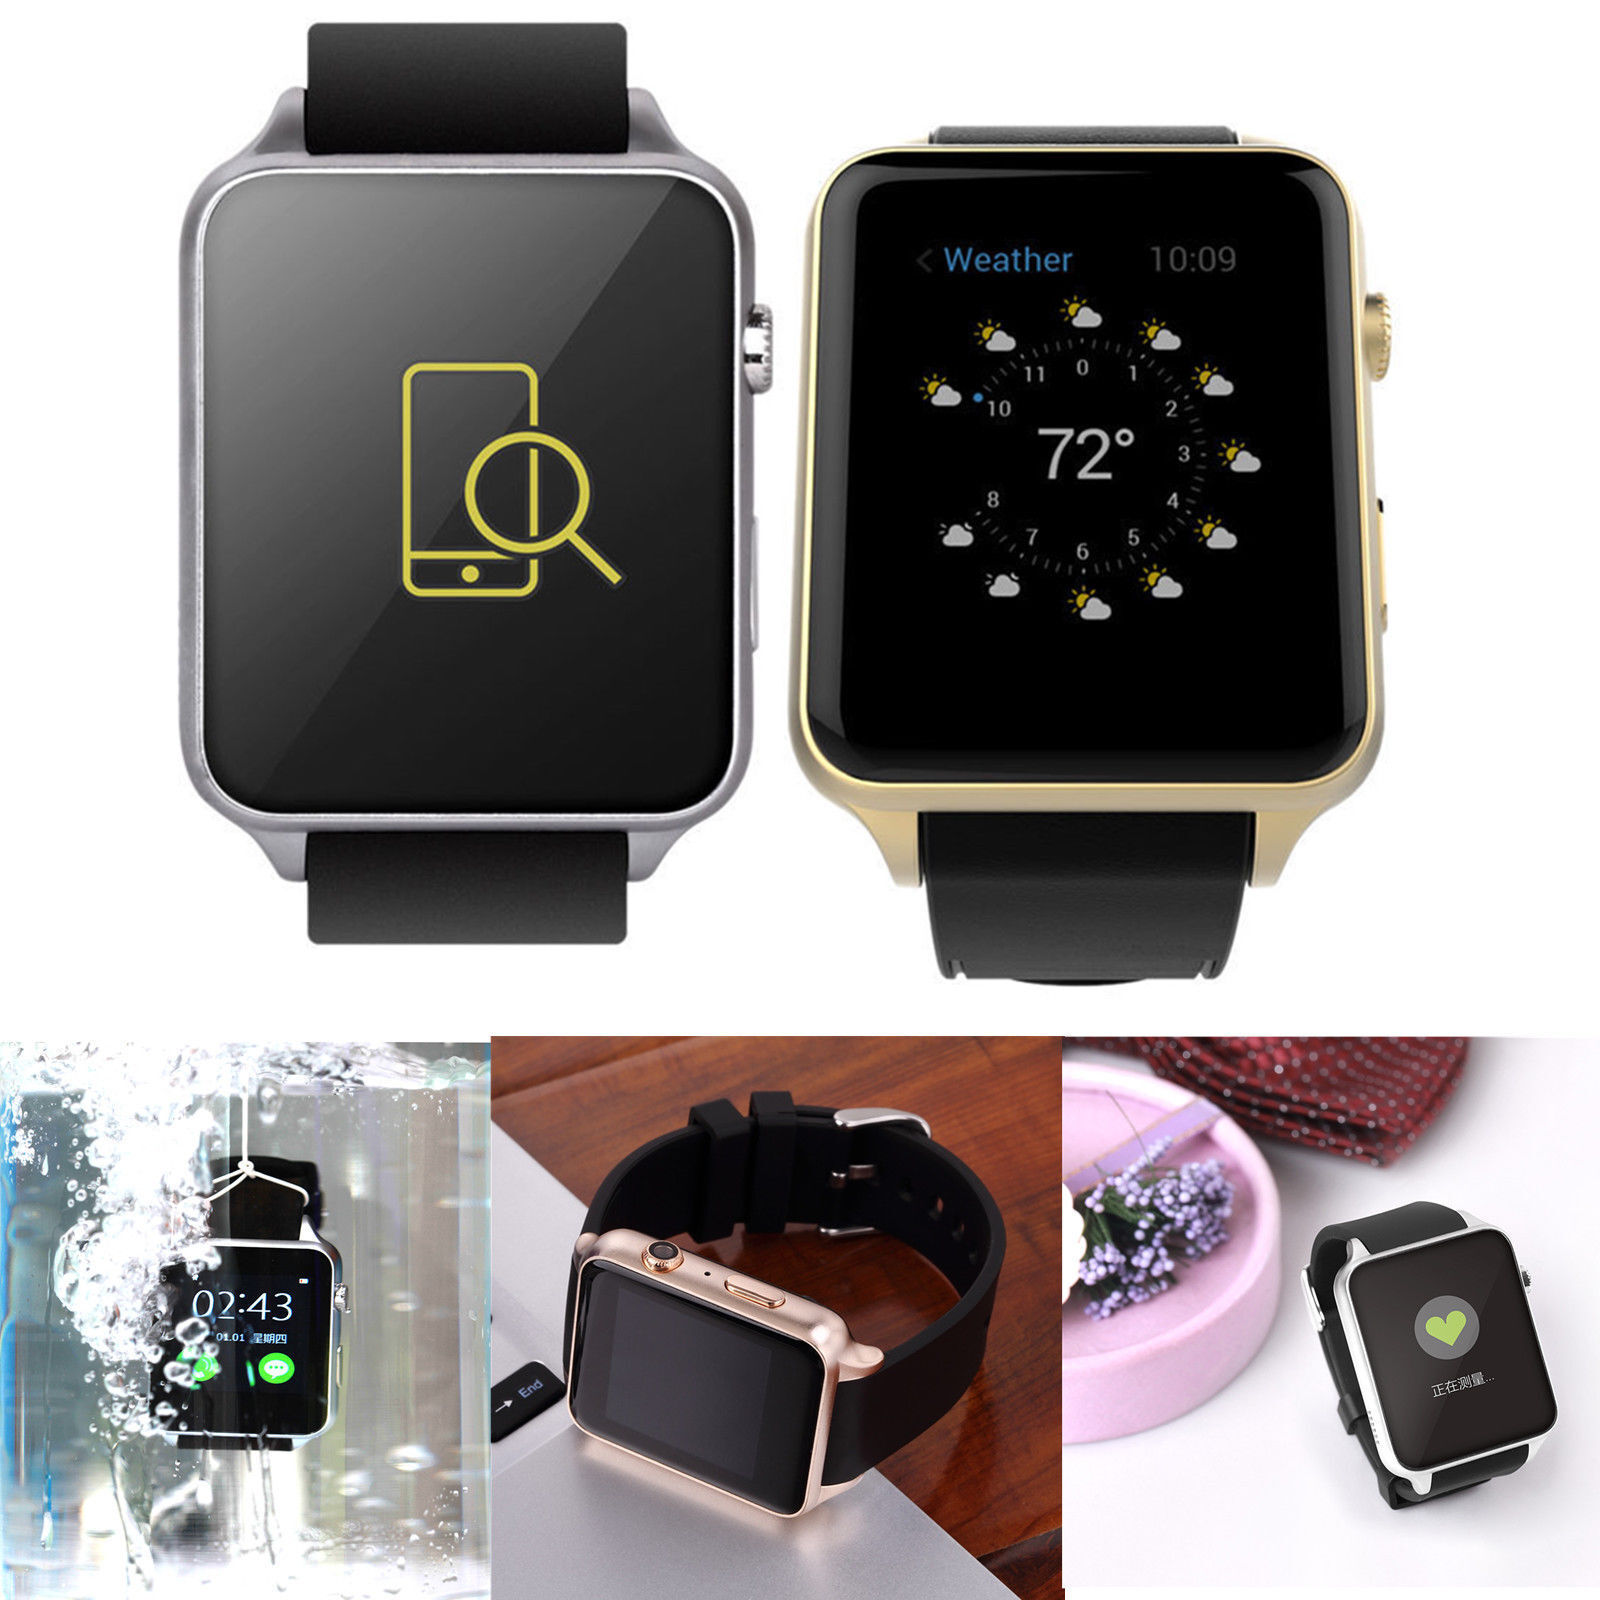 looks watches apple phone could gadgets its same series as are watershed enlarge on lte hands watch new moment counts internals what predecessor be i the